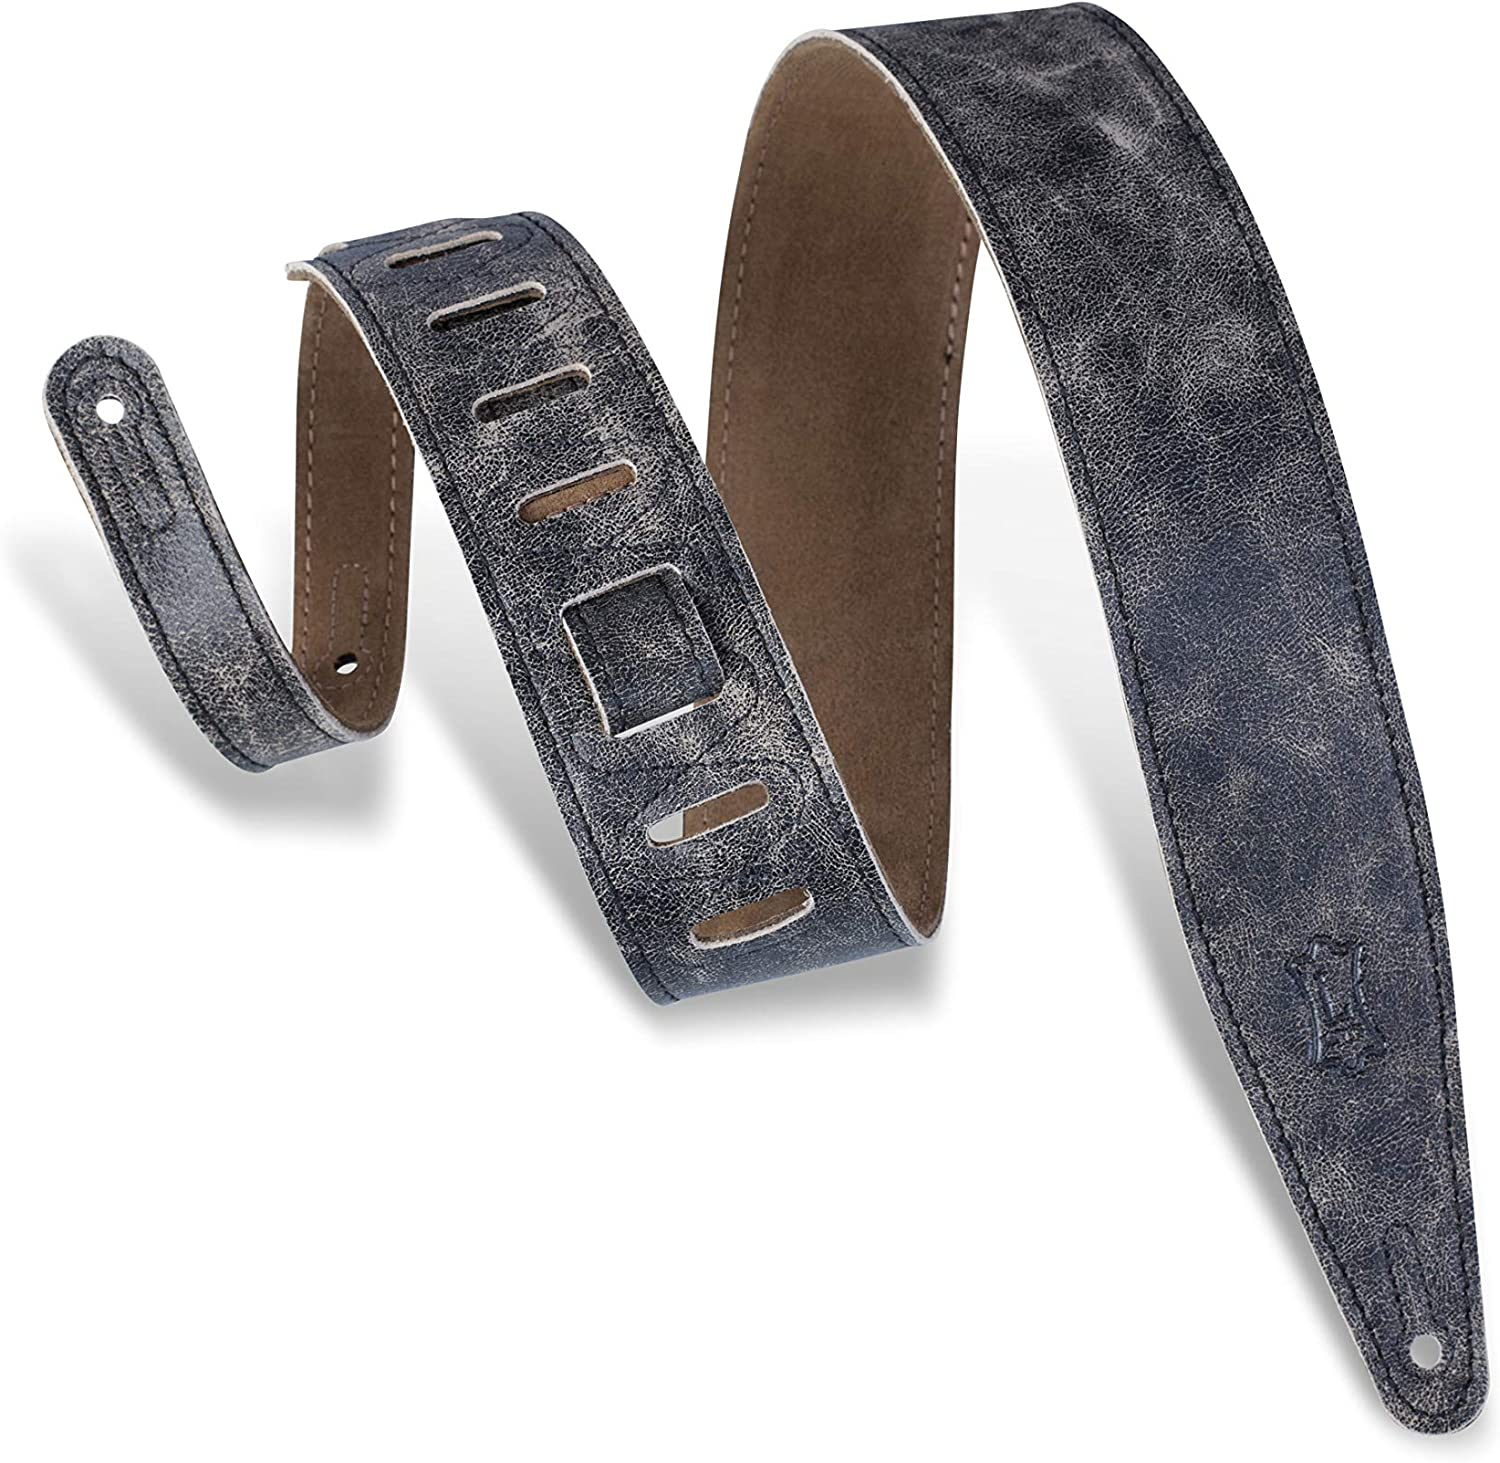 Black Levys Leathers Butter Double Stitch 2.5 wide Garment Leather Guitar Strap; Deluxe Series M17BDS-BLK